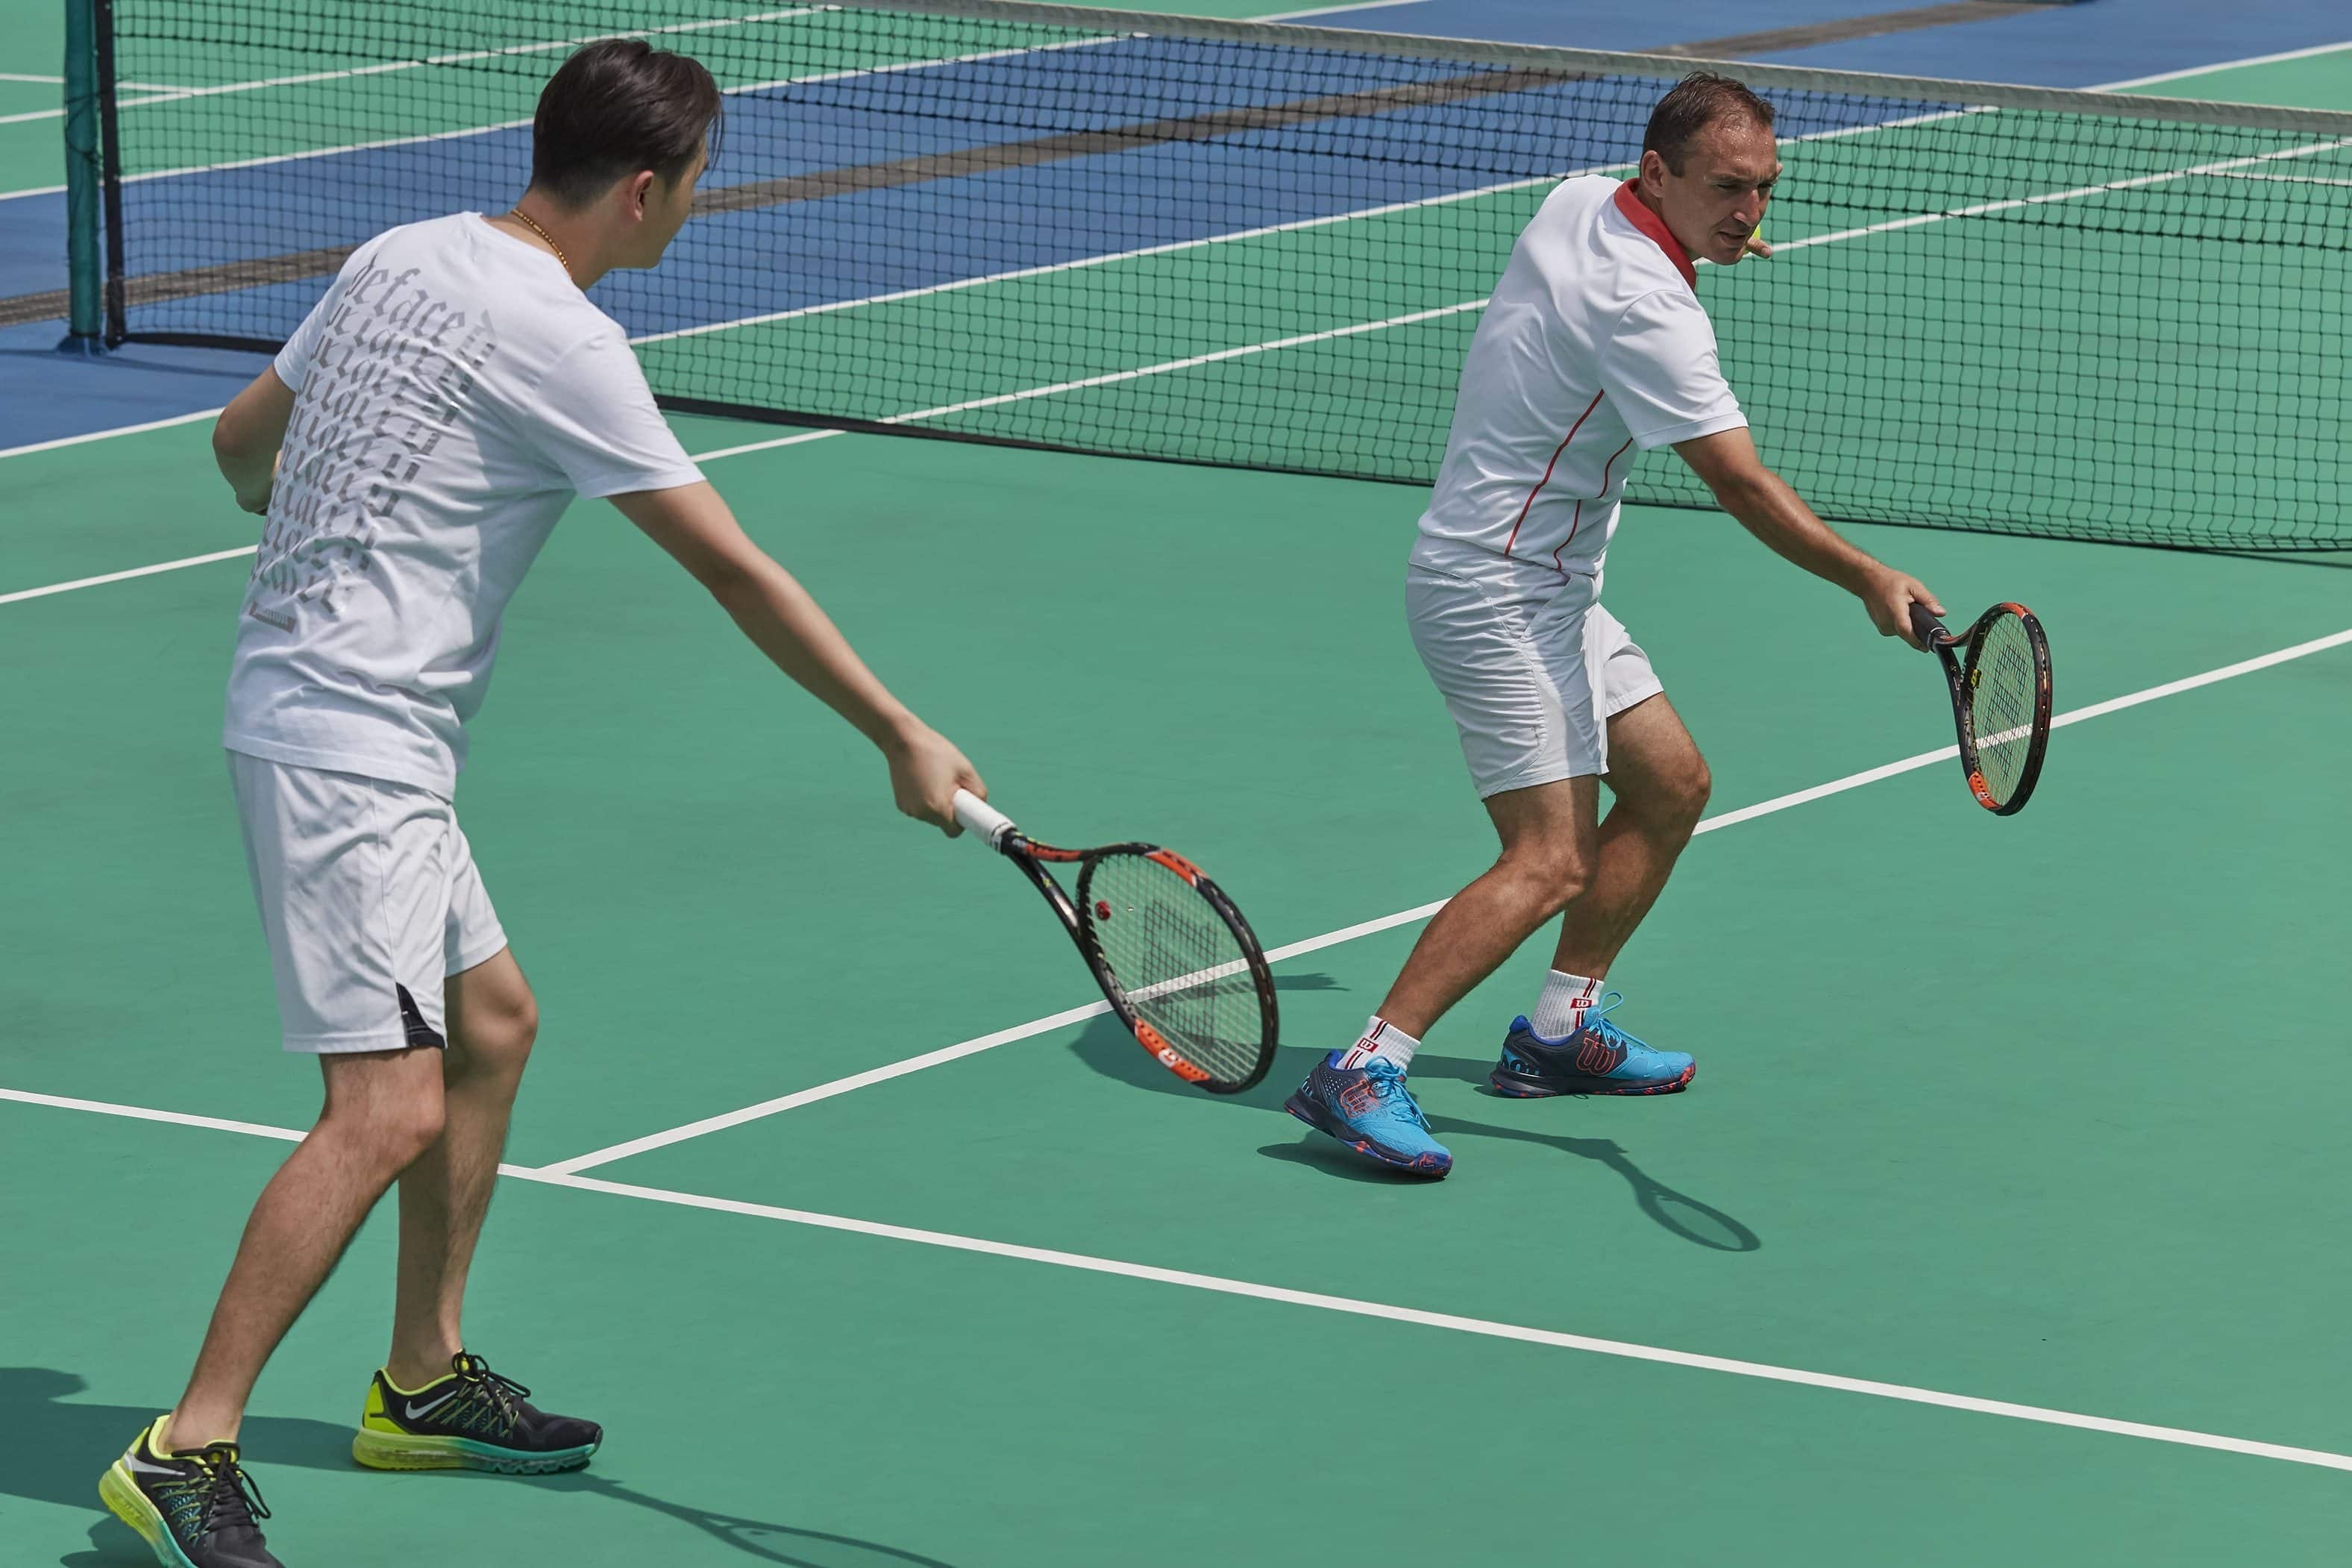 World-class tennis services